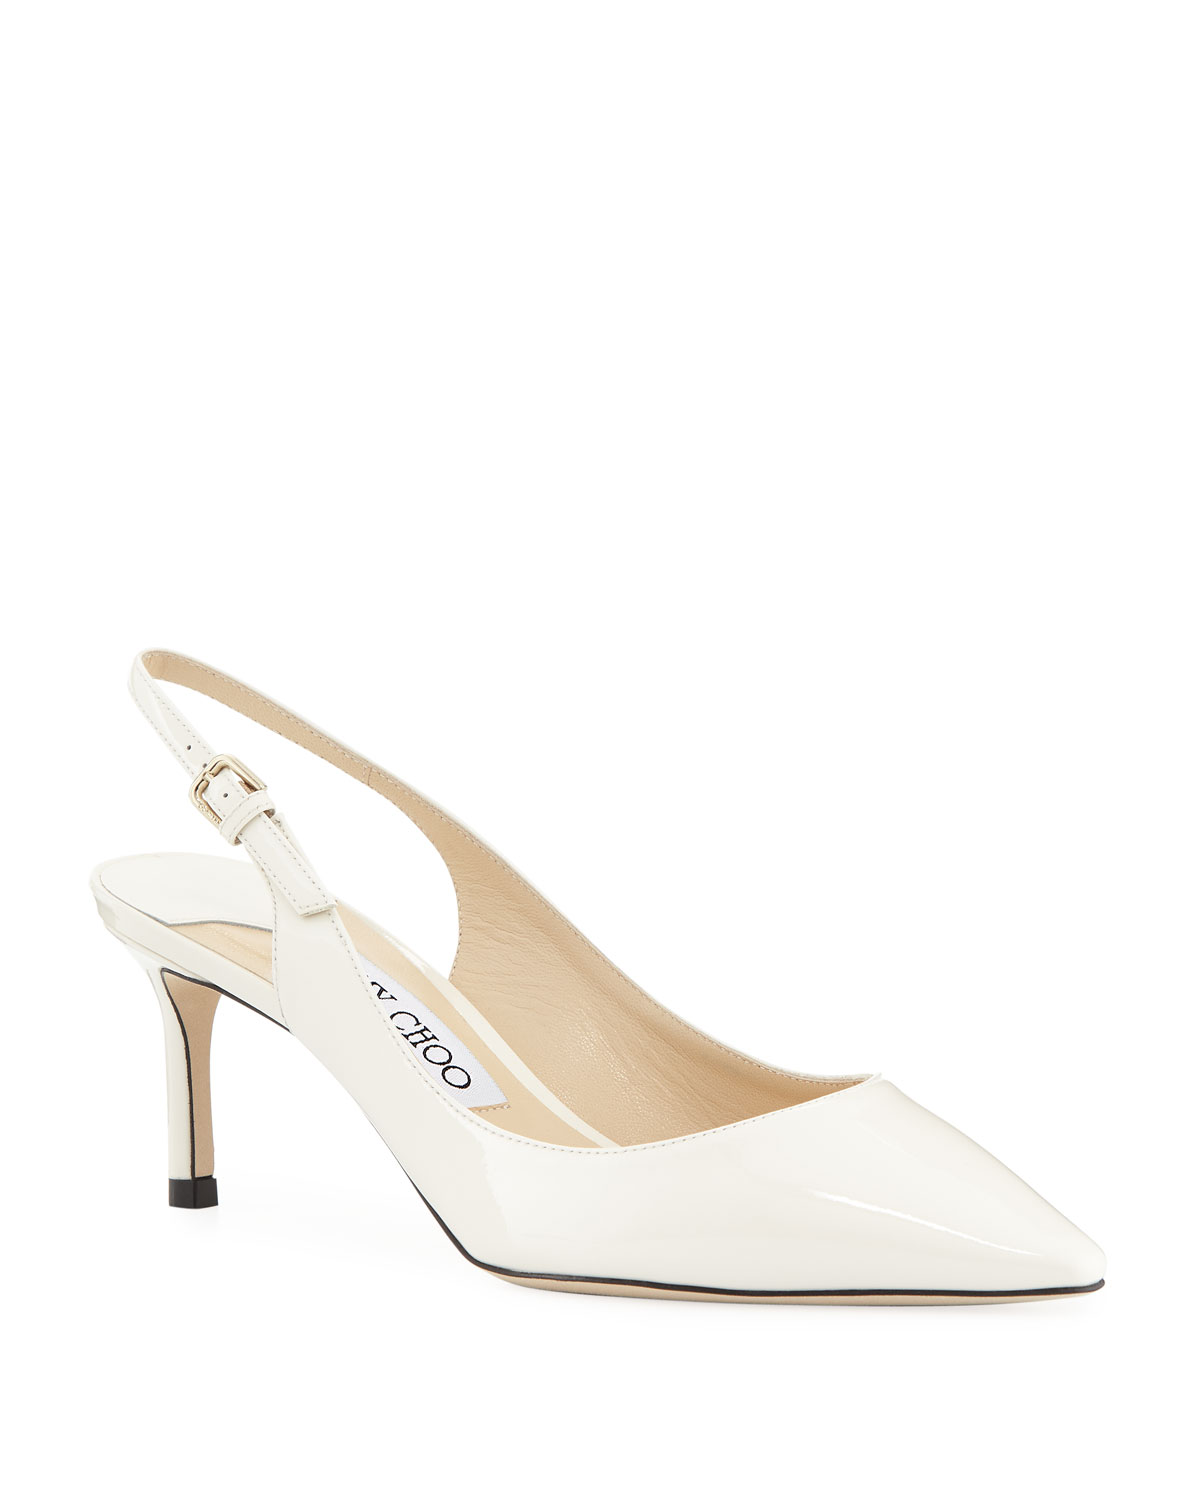 Jimmy Choo Erin Slingback Patent Leather Pumps